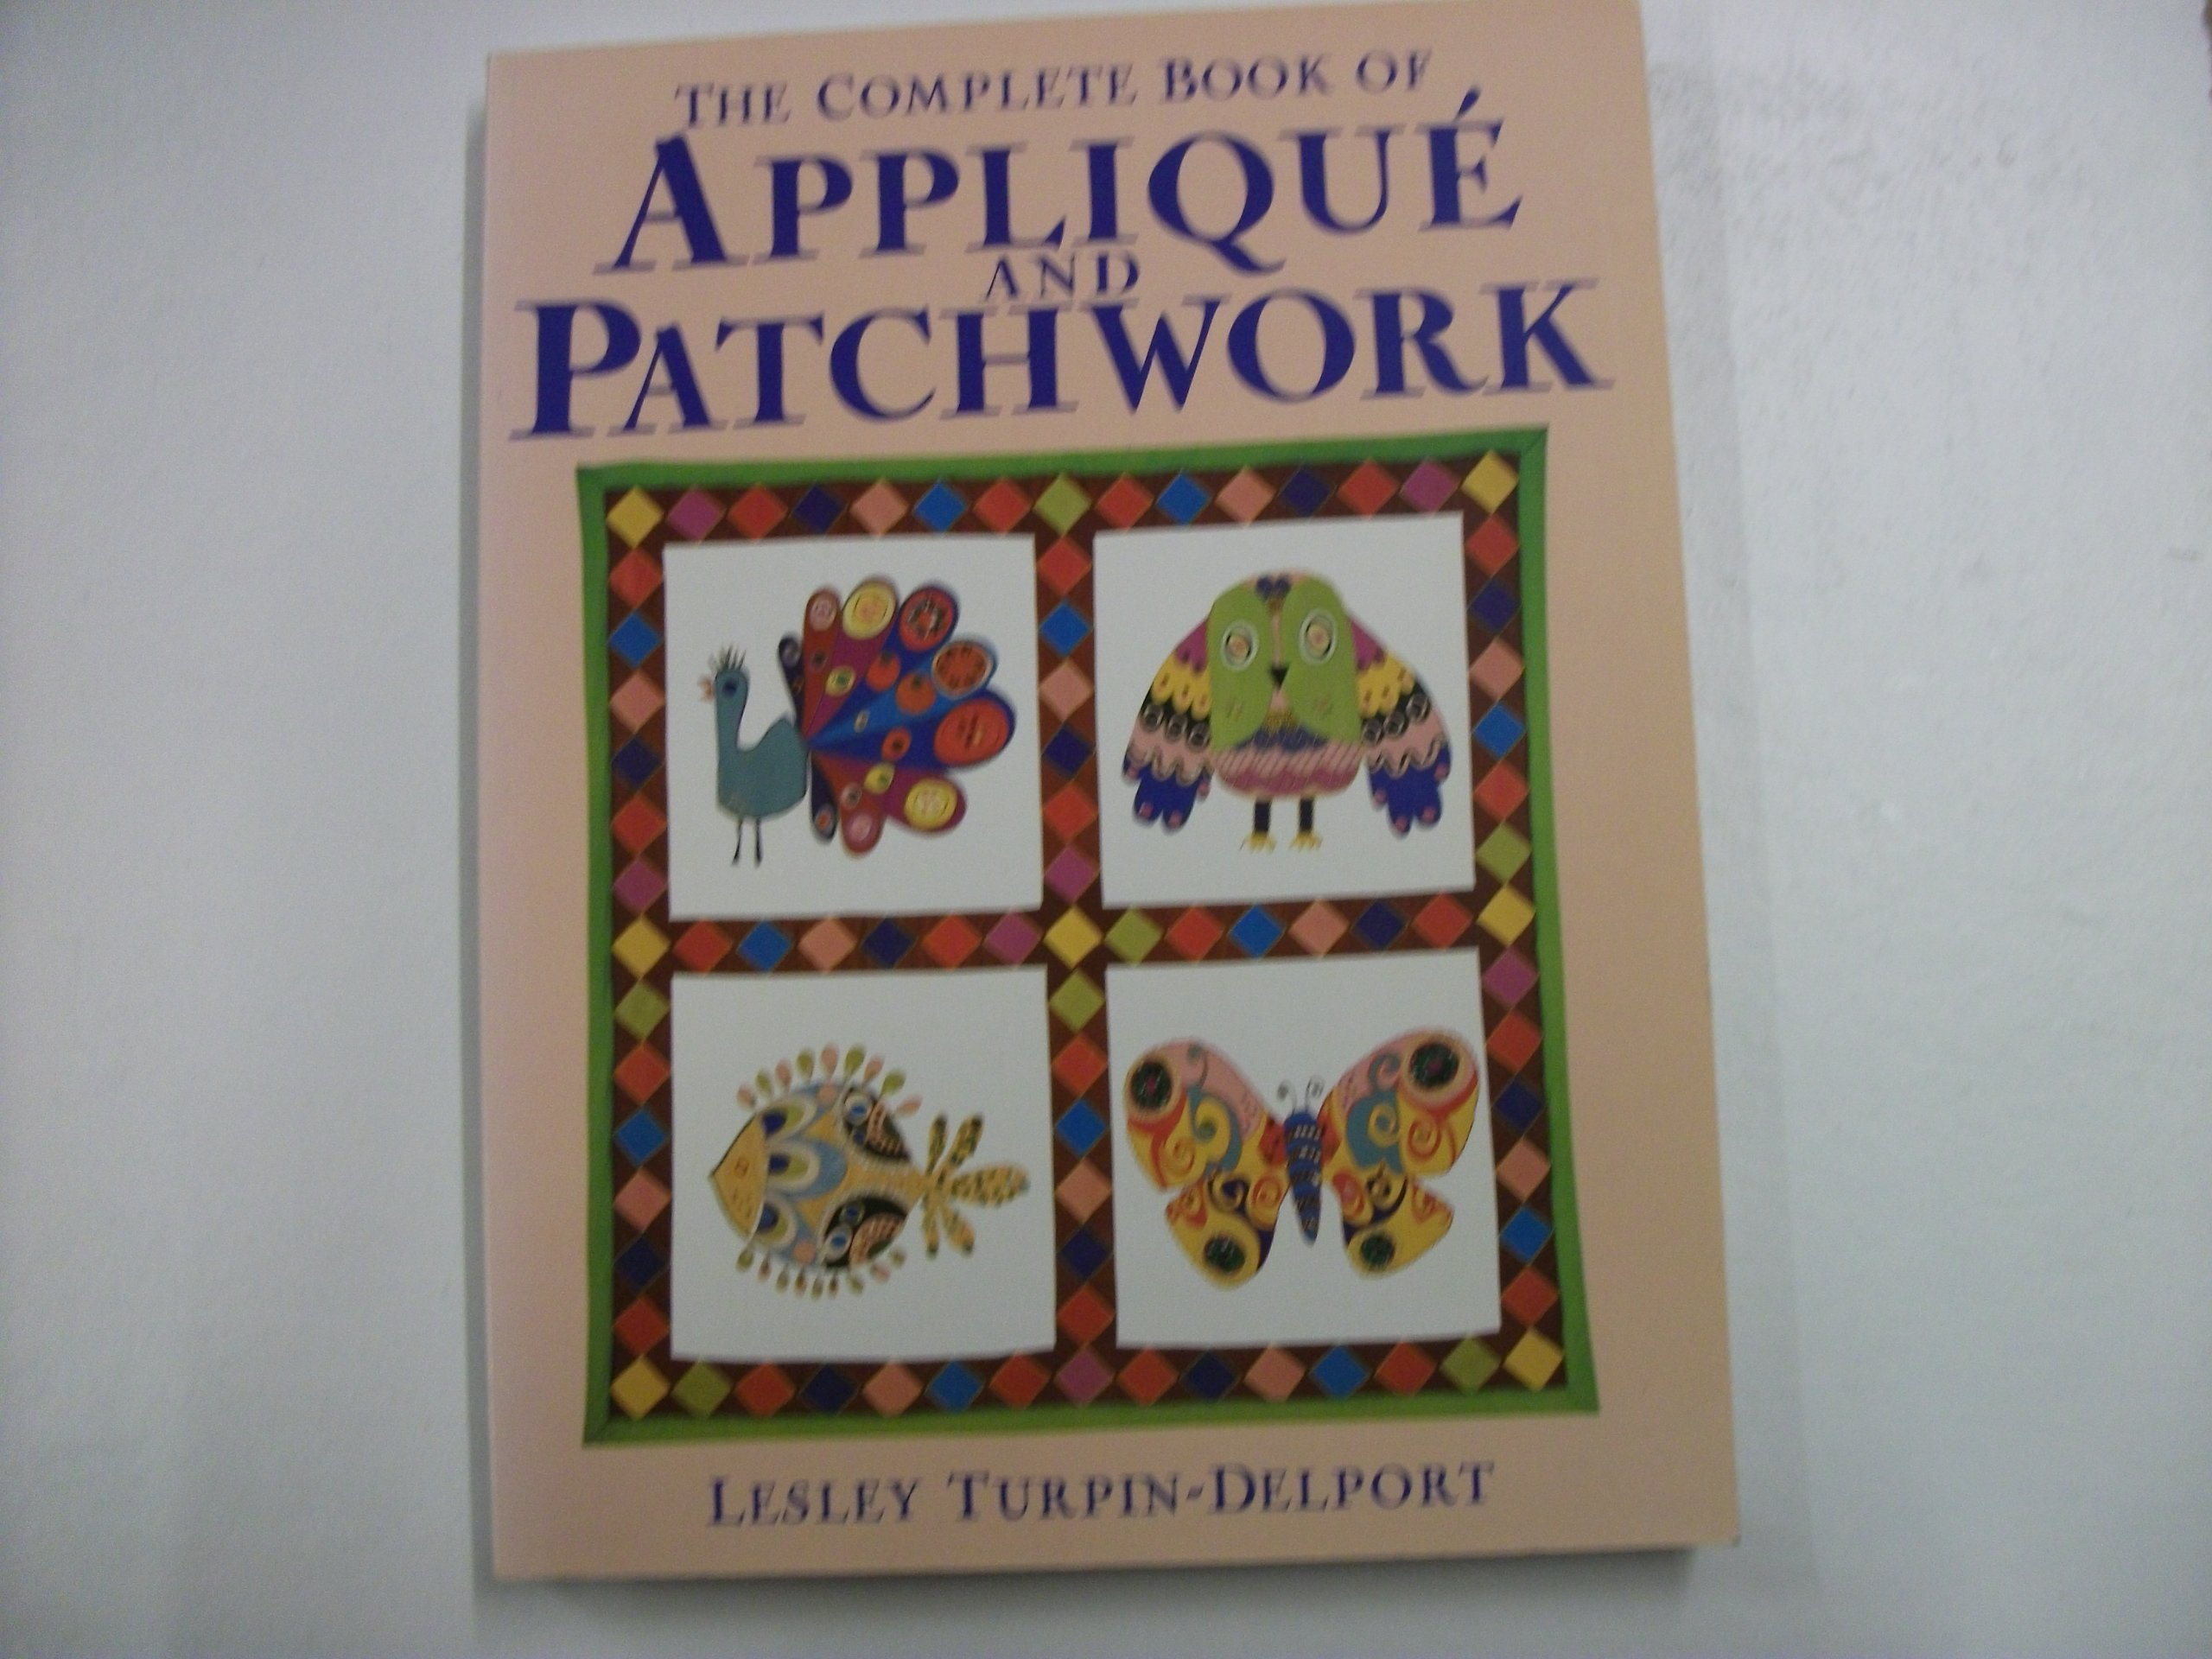 The complete book of applique and patchwork amazon lesley